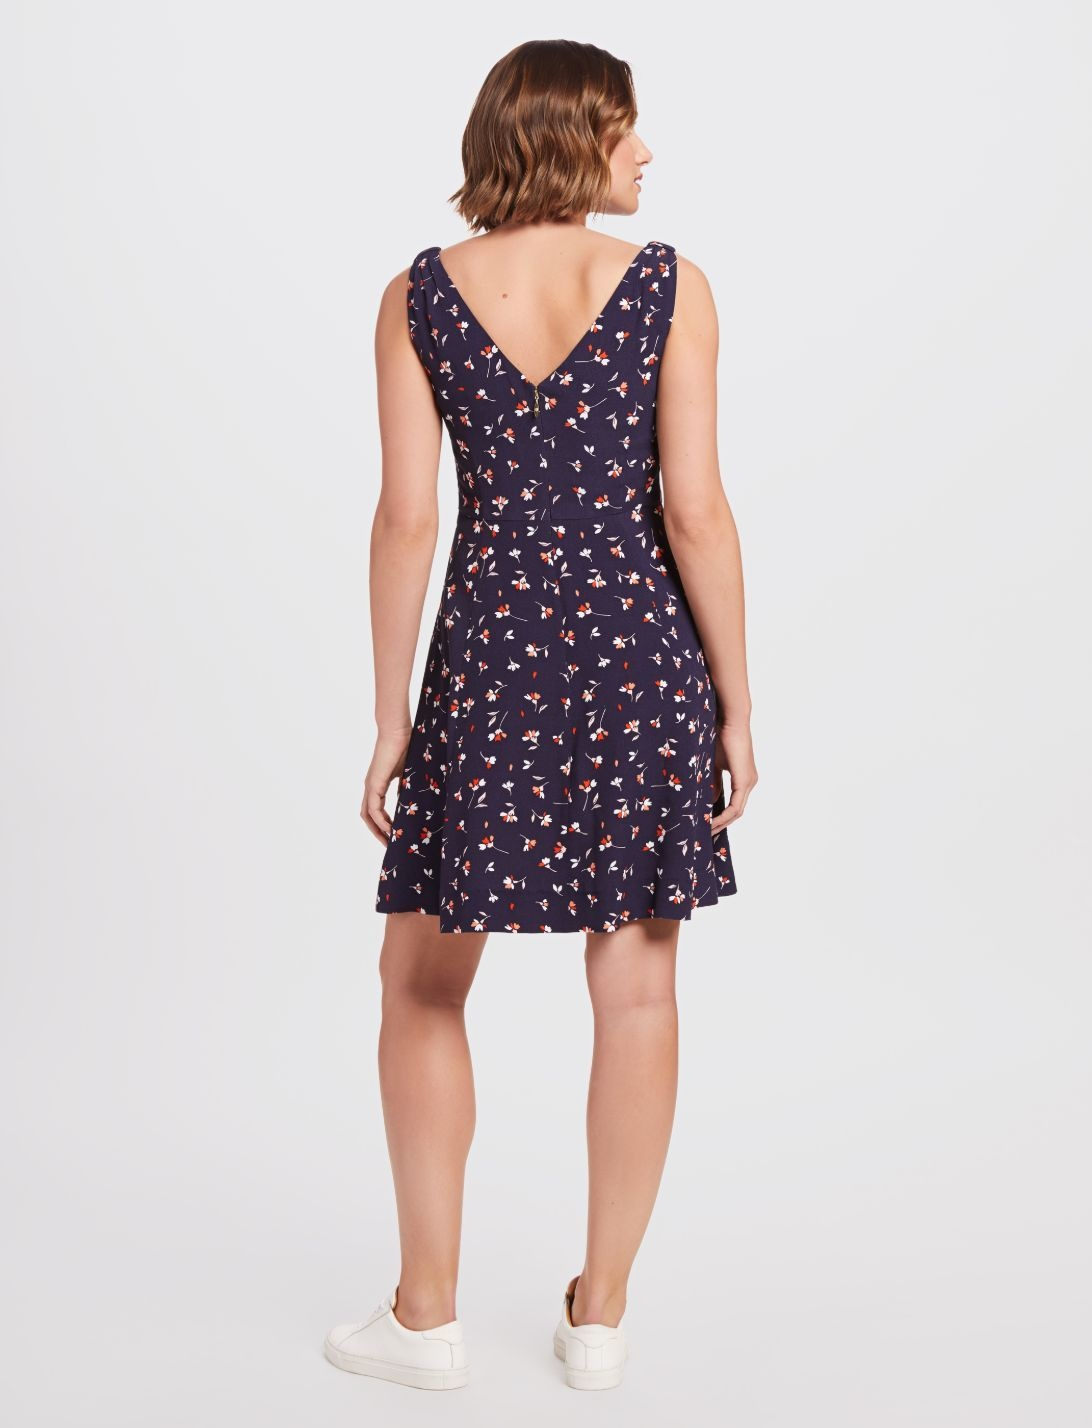 DRAPER JAMES Floral Knot Shoulder Dress